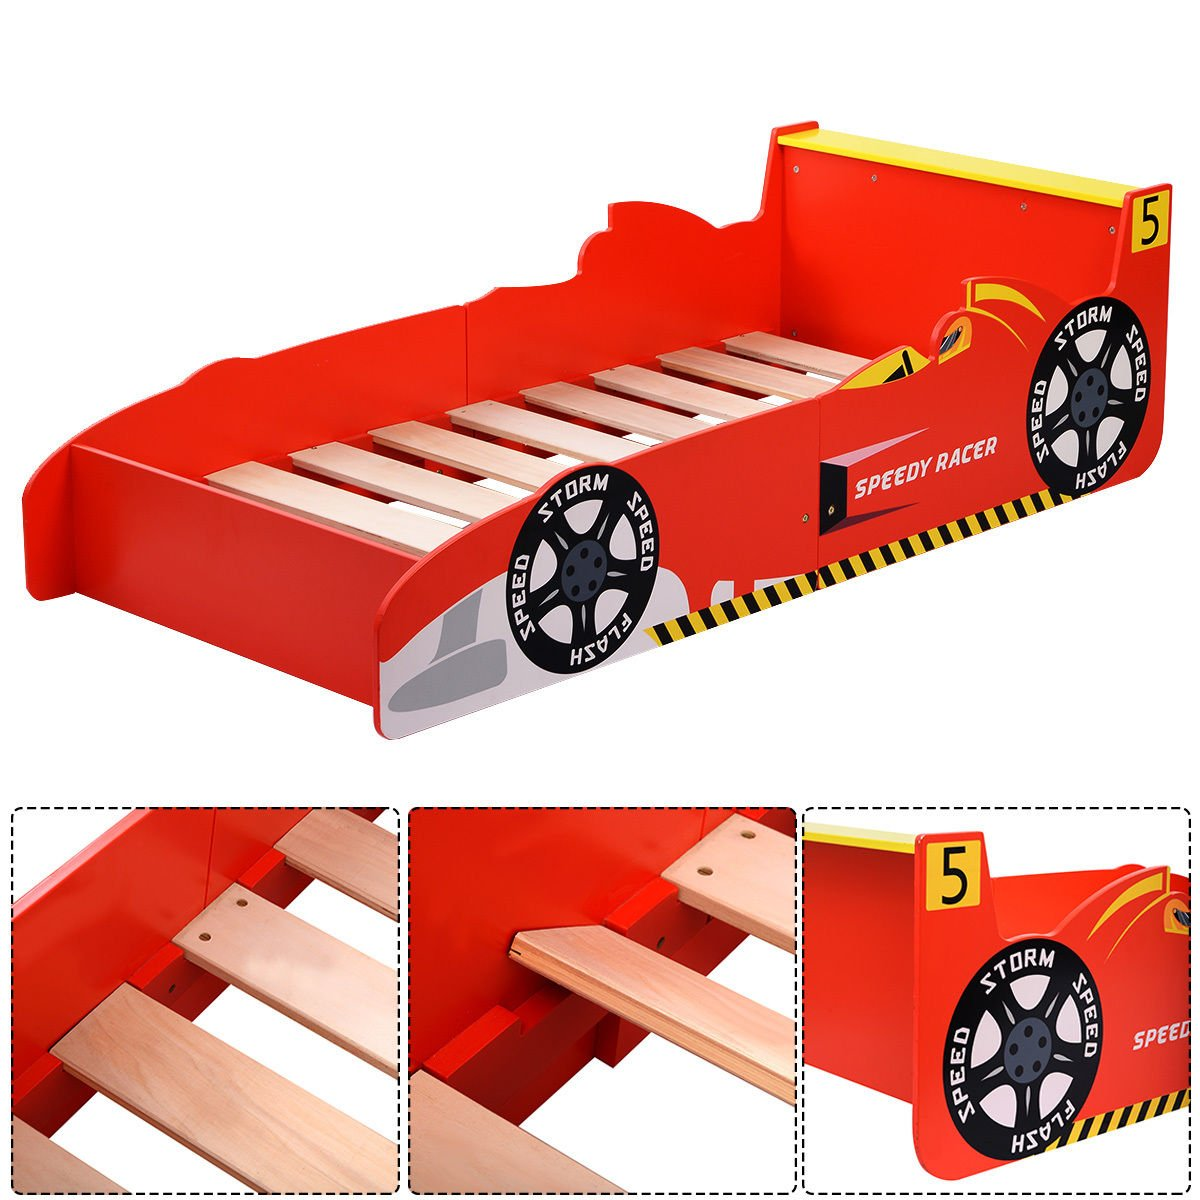 COLIBROX--Kids Race Car Bed Toddler Bed Boys Child Furniture Bedroom Red Wooden New,toddler beds for boys,cheap toddler beds,car bed twin, kids race car Toddler Bed by COLIBROX (Image #6)